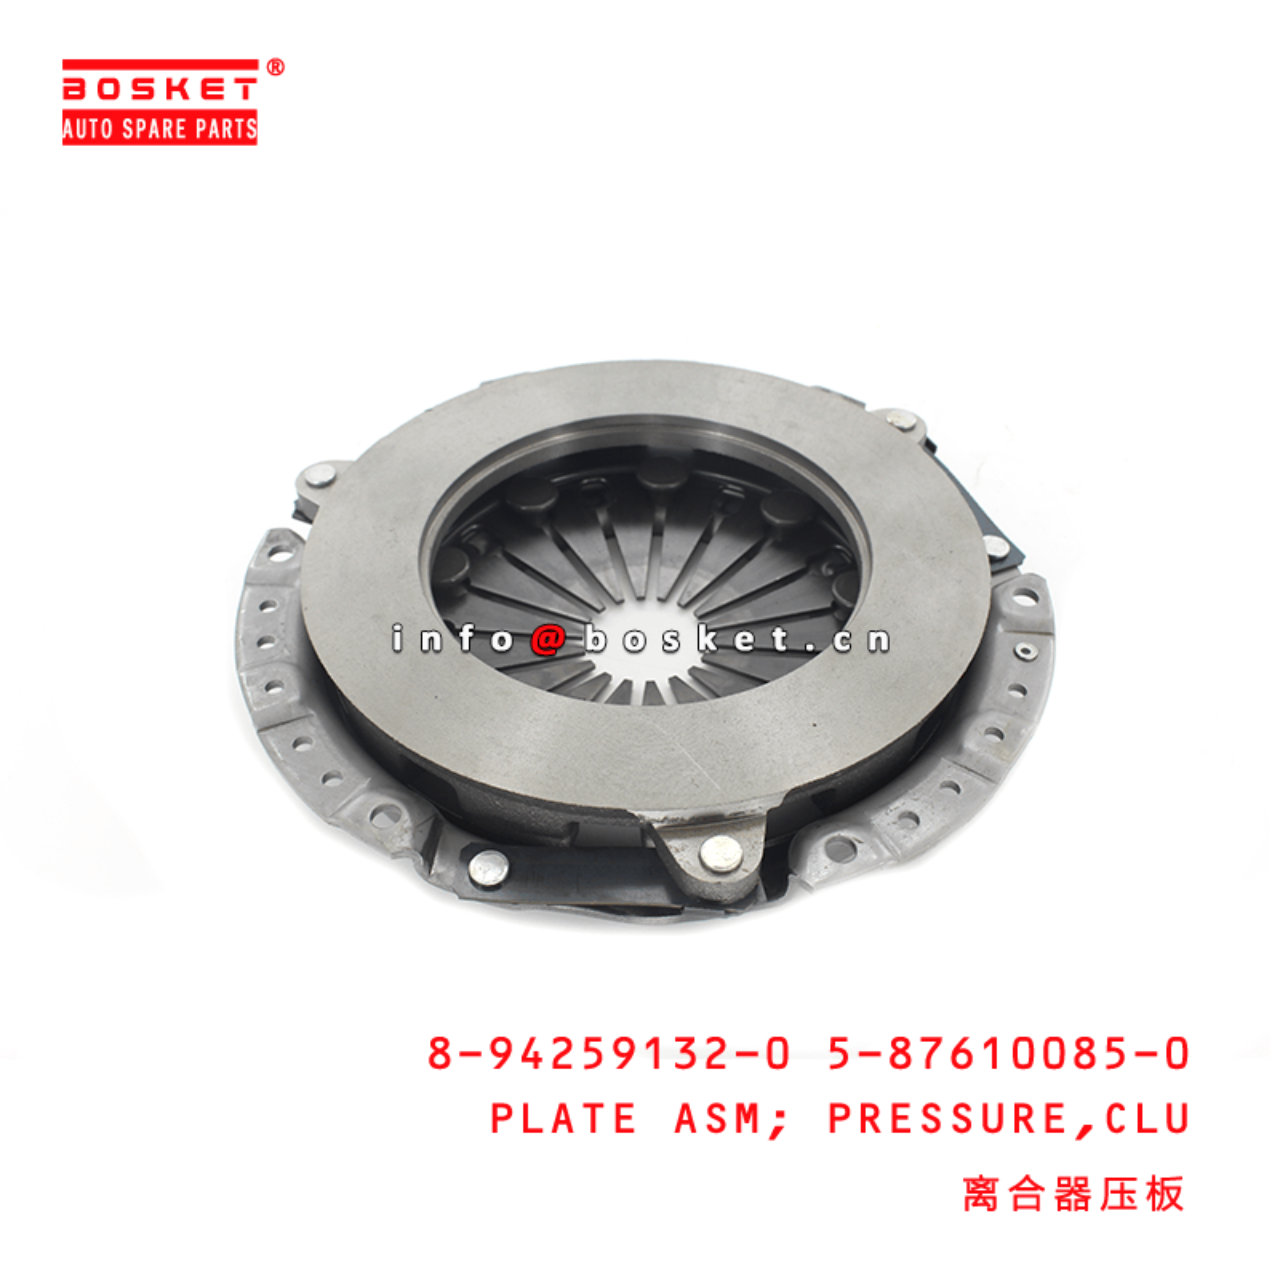 8-94259132-0 5-87610085-0 Clutch Pressure Plate Assembly 8942591320 5876100850 Suitable for ISUZU NH